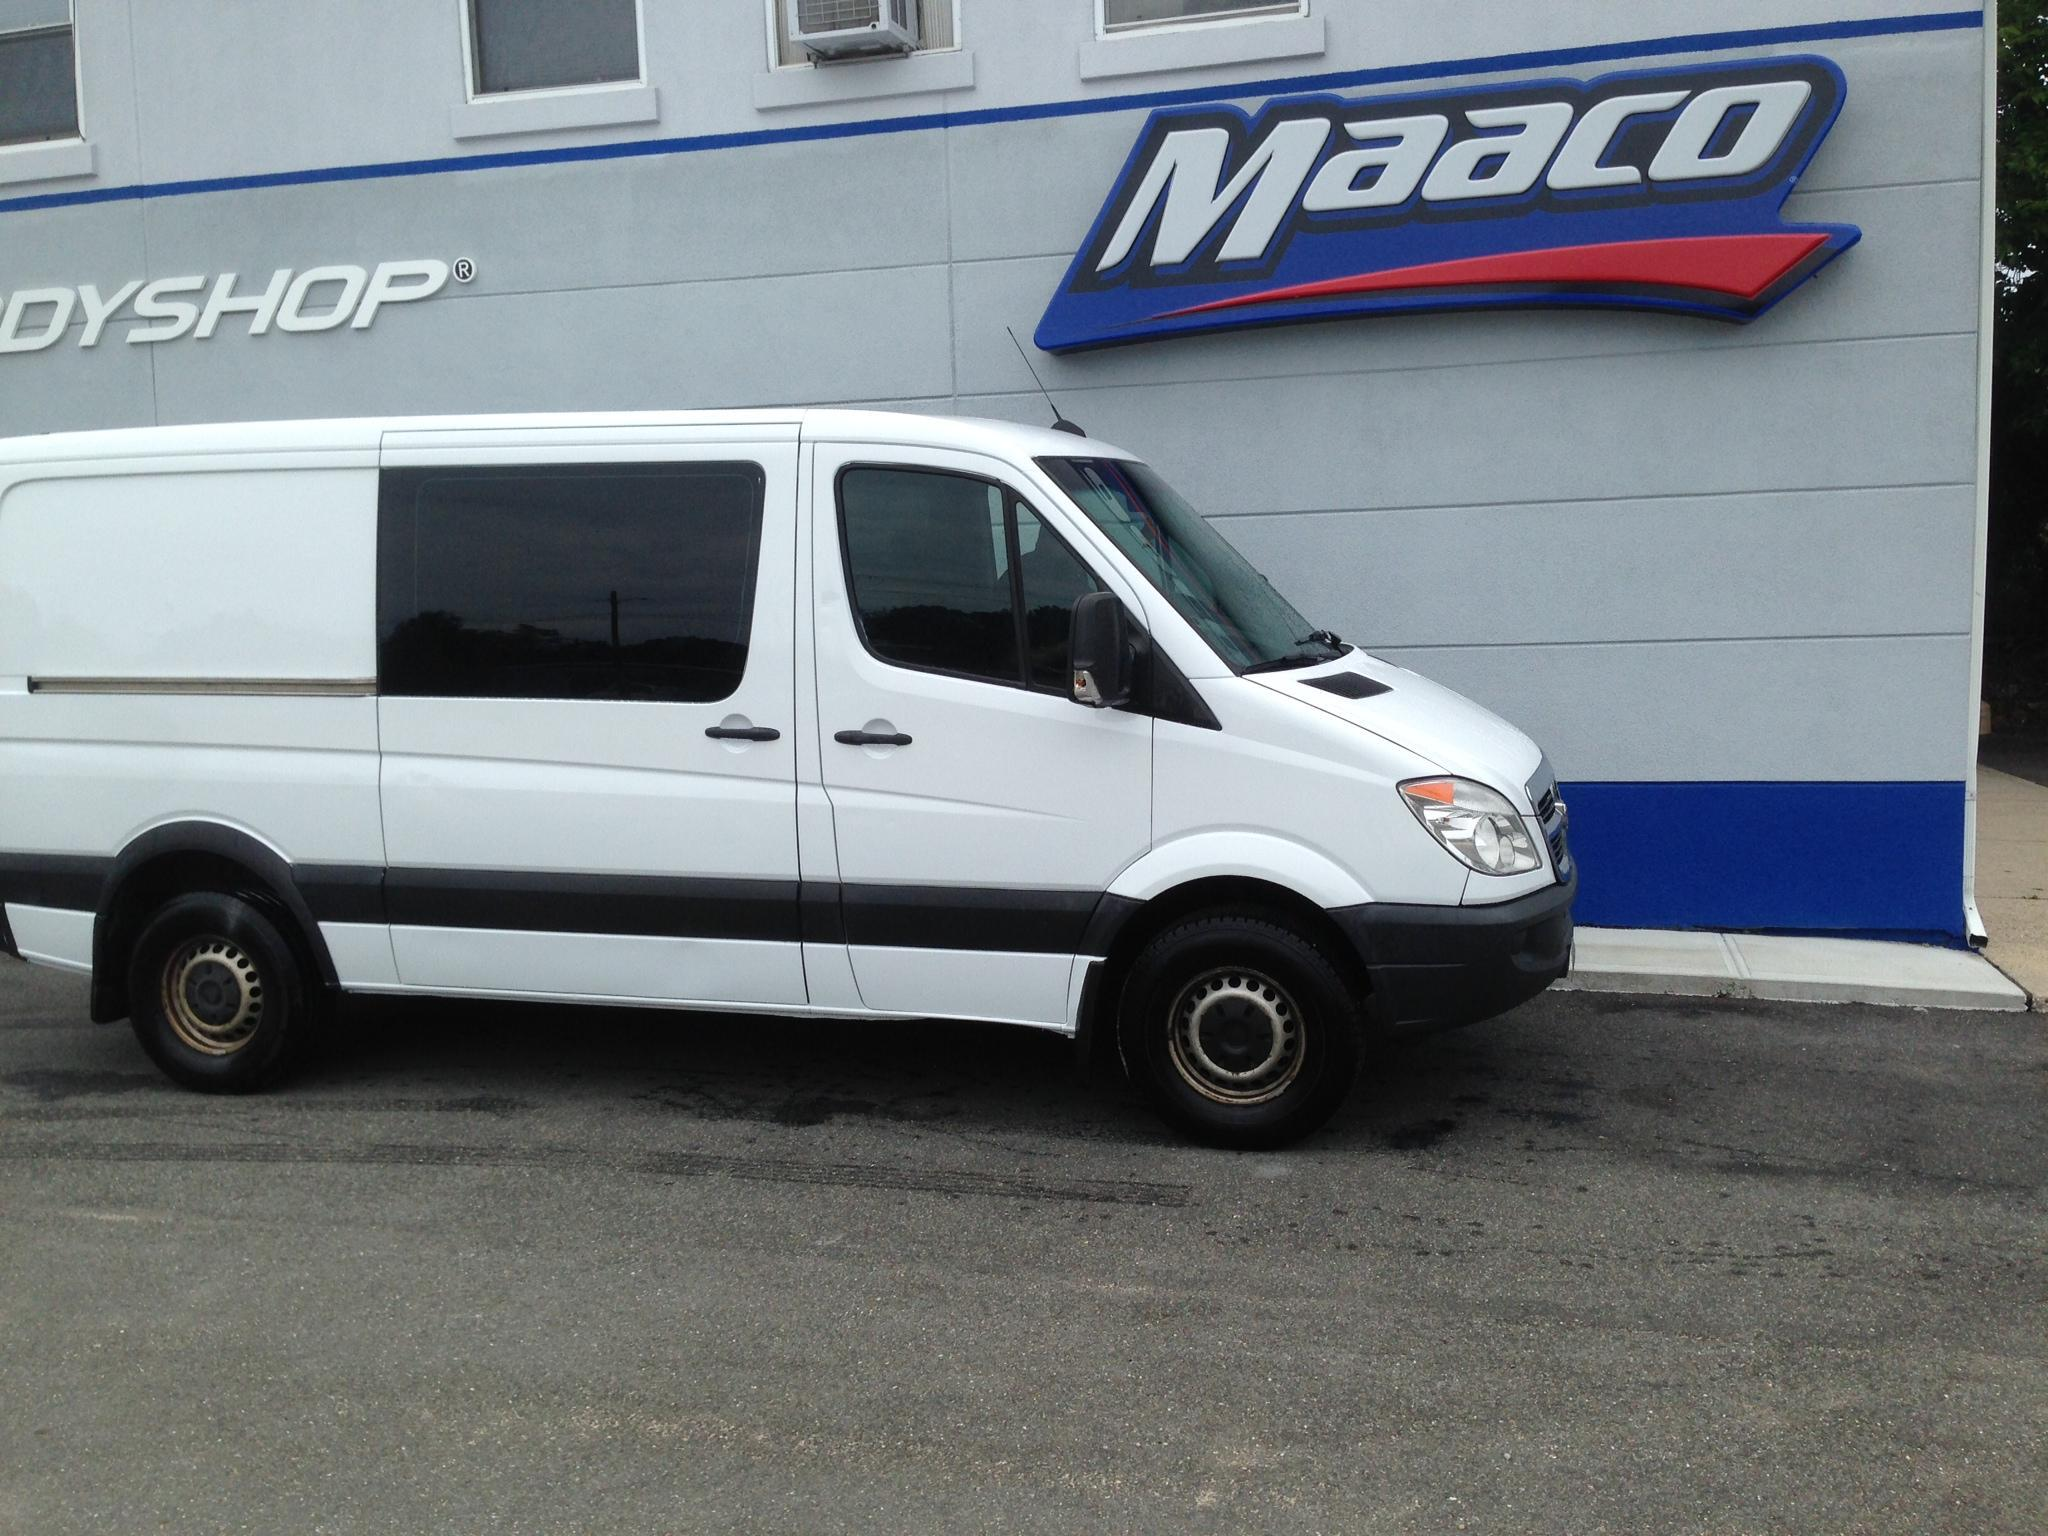 Maaco Collision Repair & Auto Painting, Massapequa New